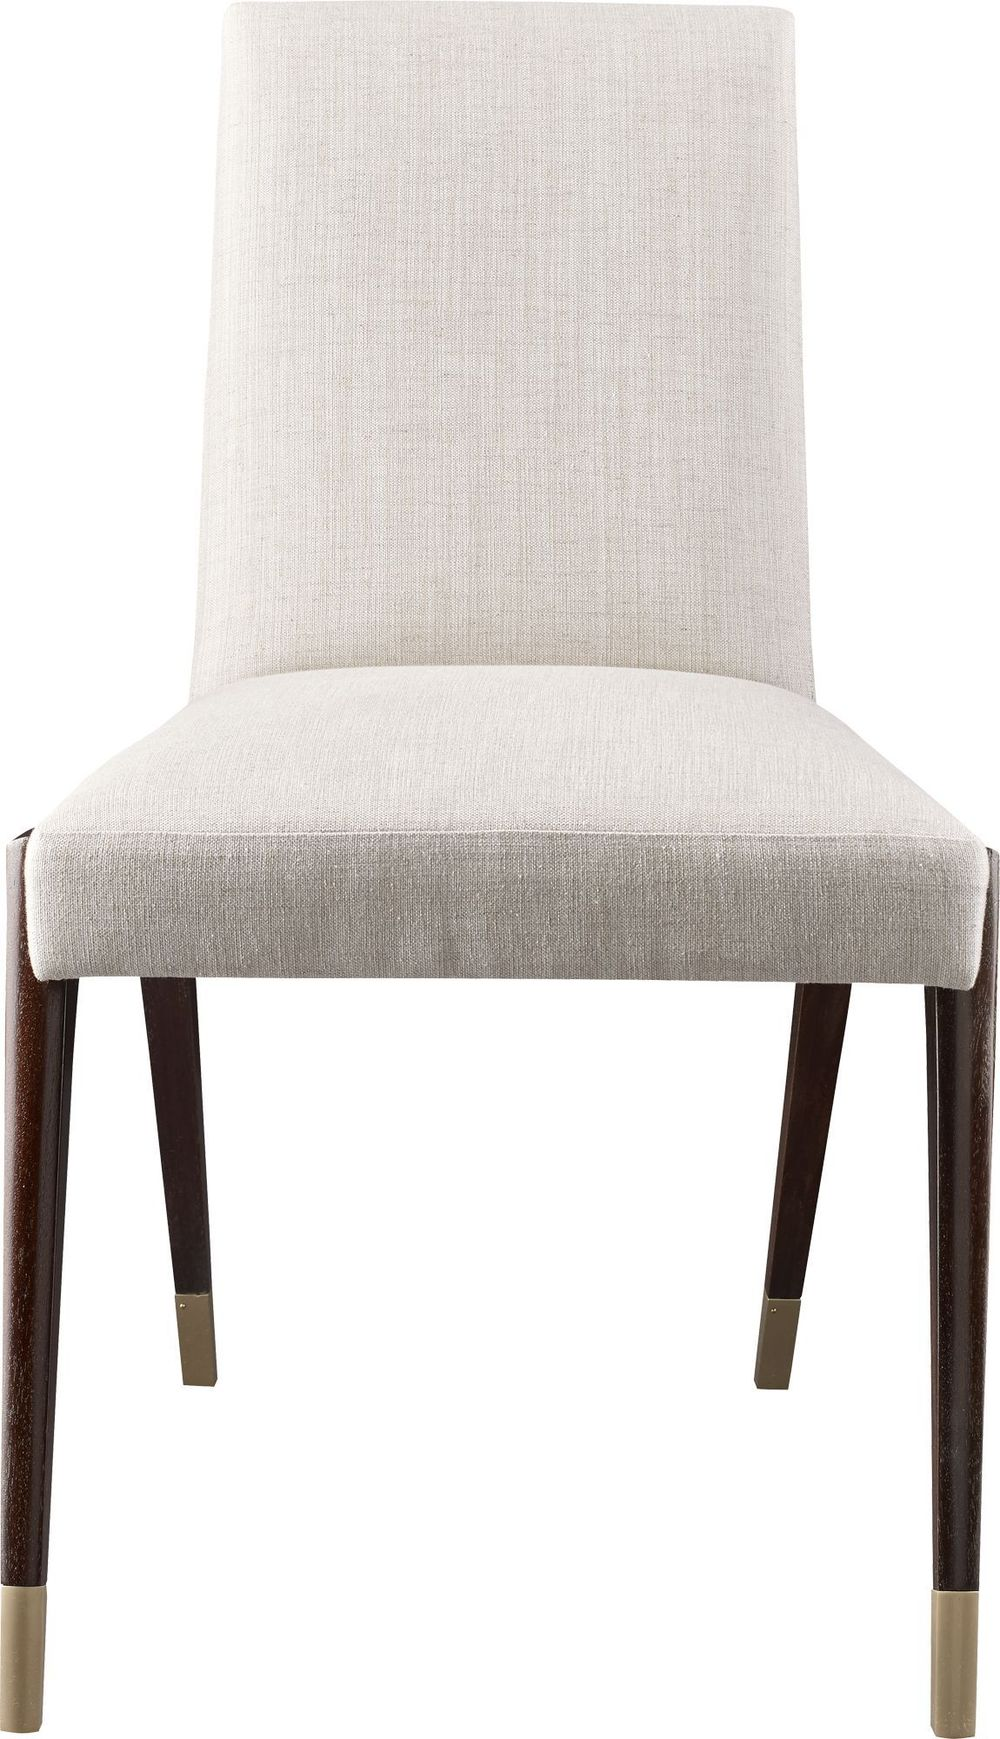 Baker Furniture - Sling Side Chair